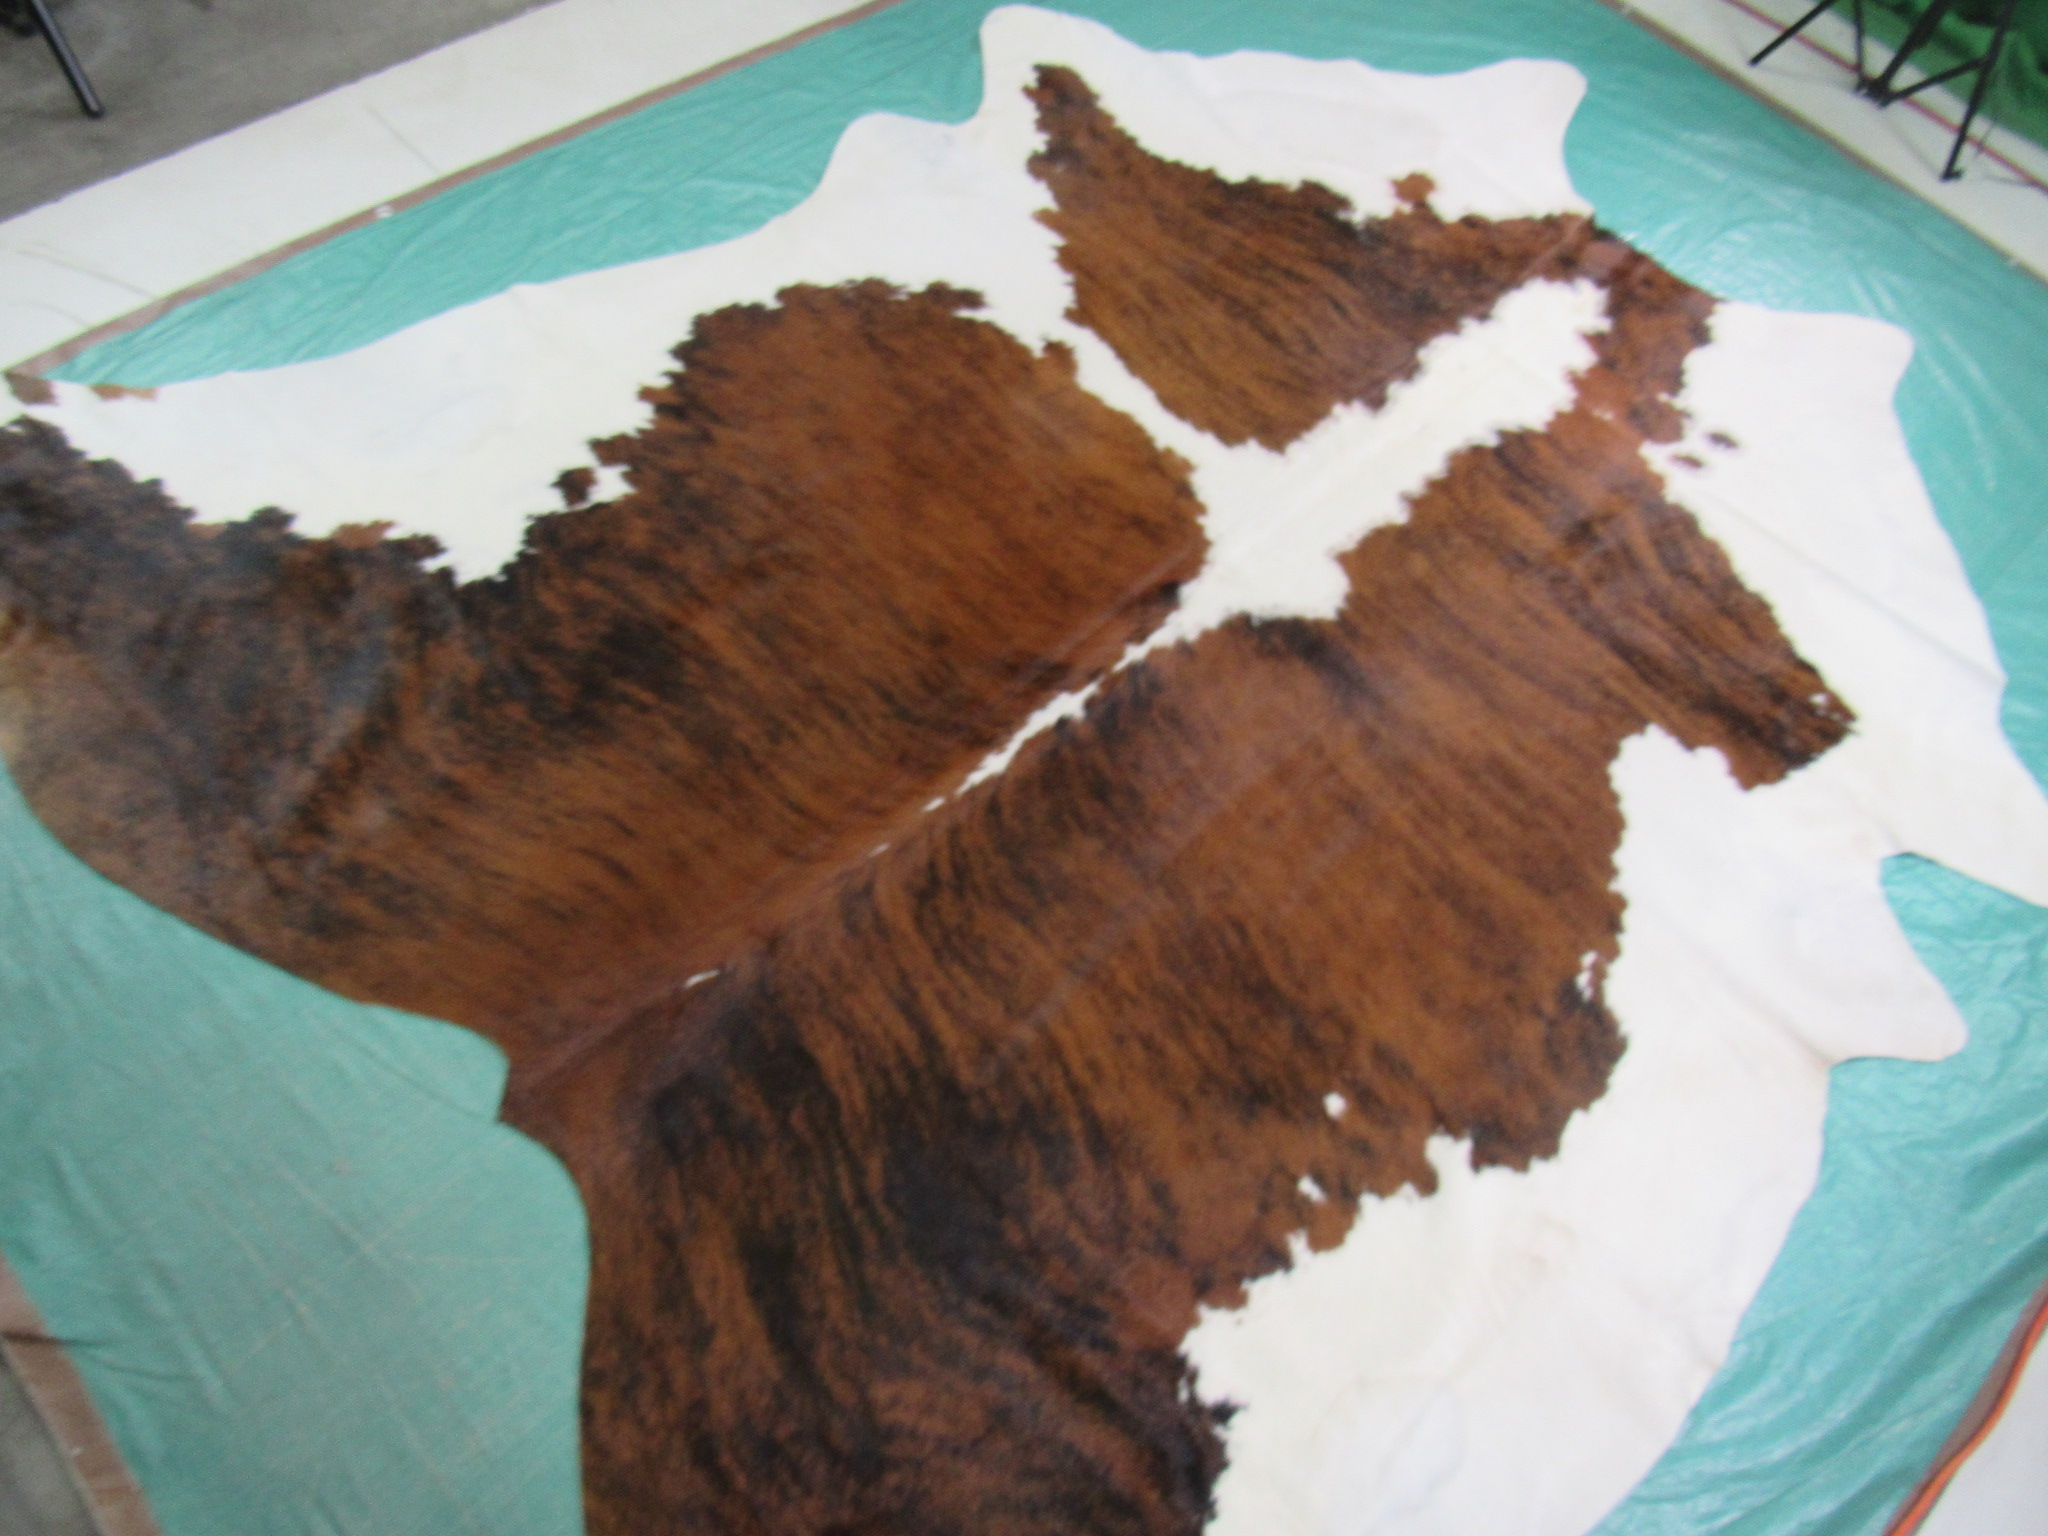 A-1139 White Belly Brindle Cowhide Rug Size: 8' X 7 3/4'